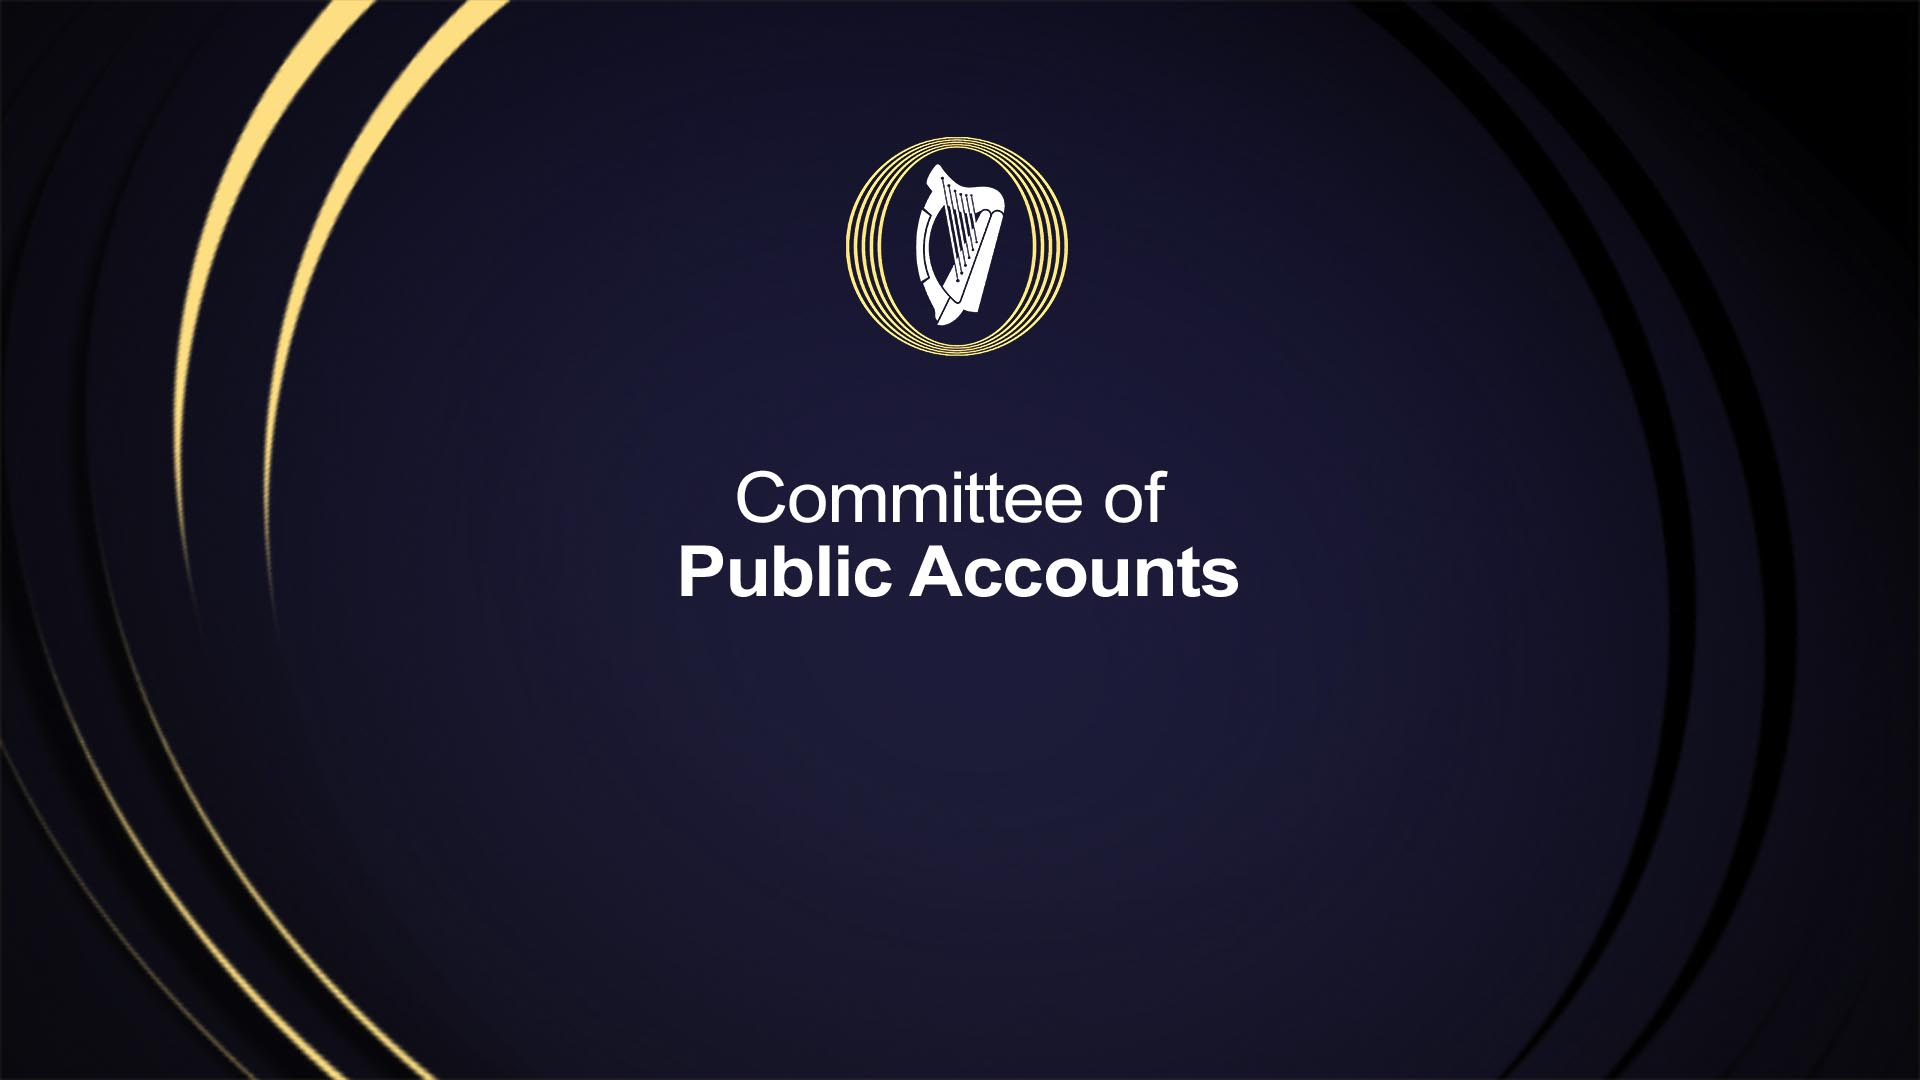 Committee of Public Accounts